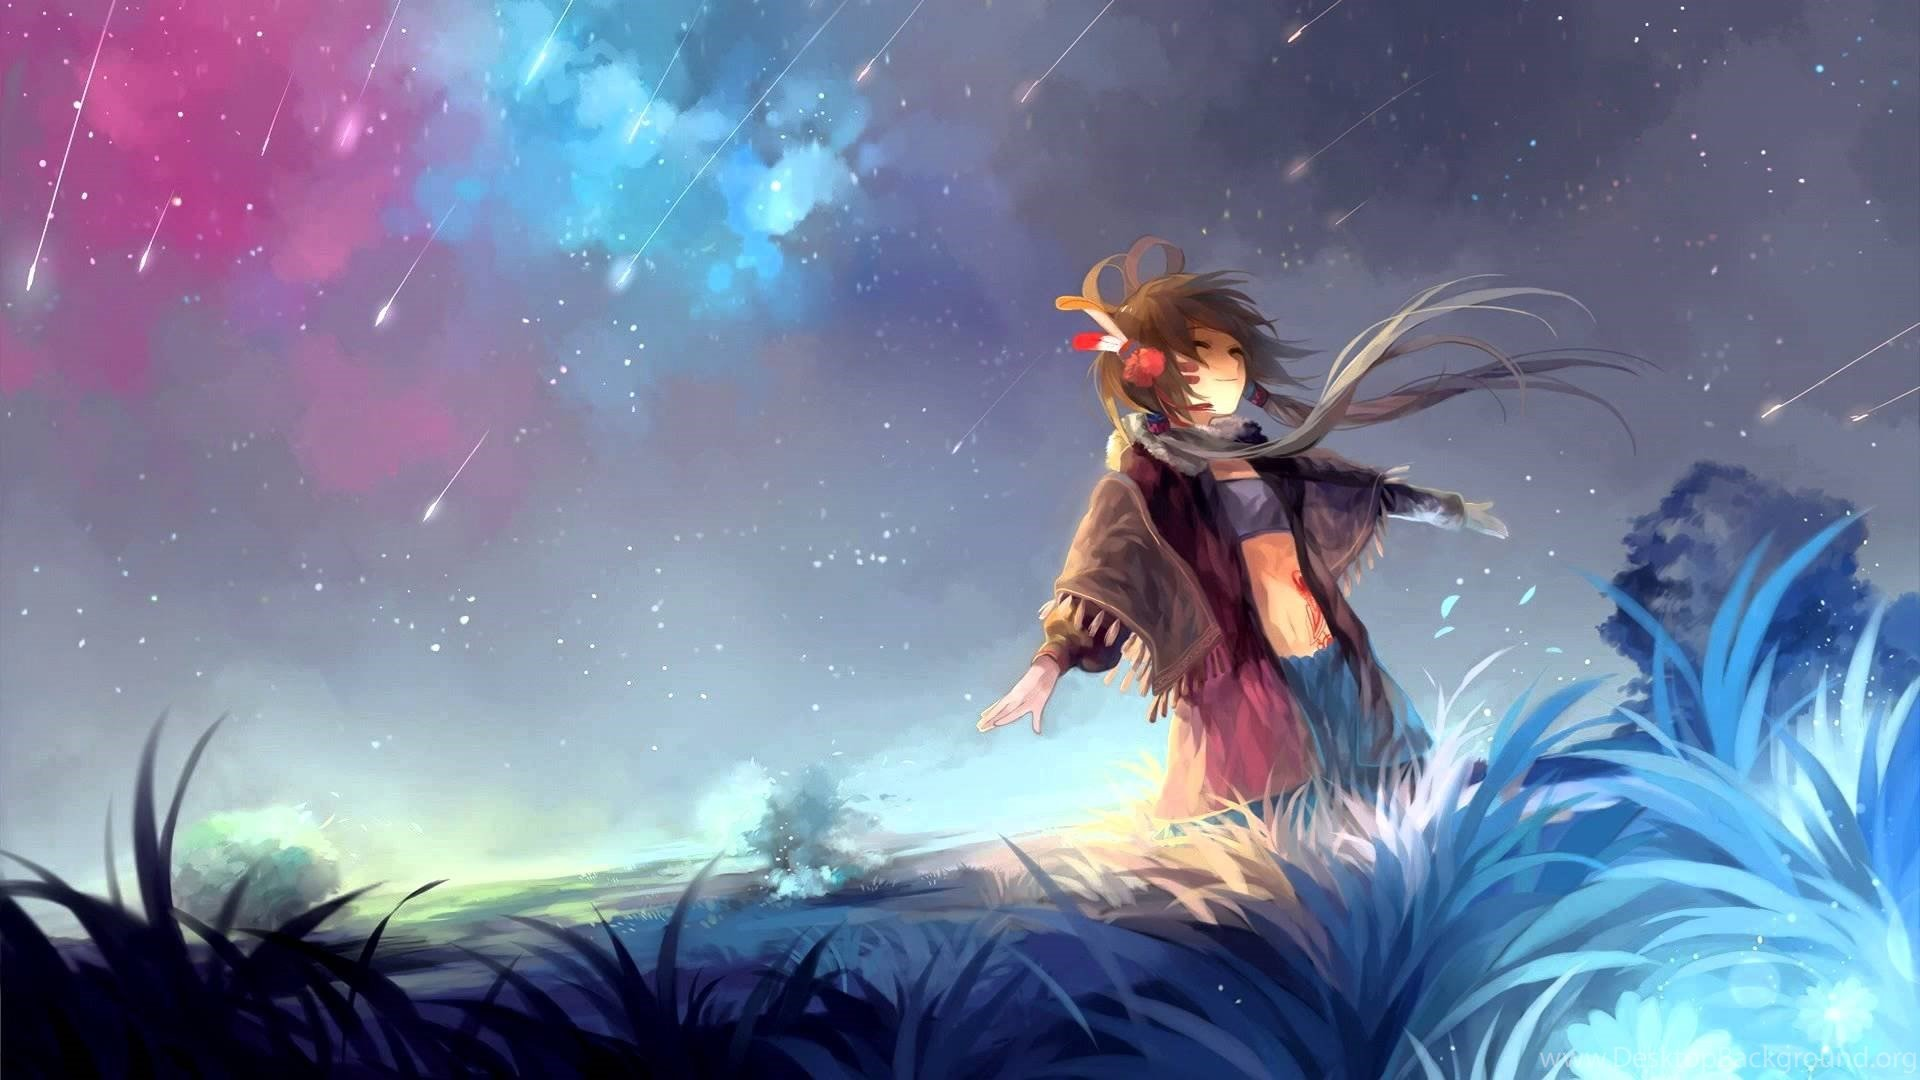 Anime Love Wallpapers For Desktop 73 Images